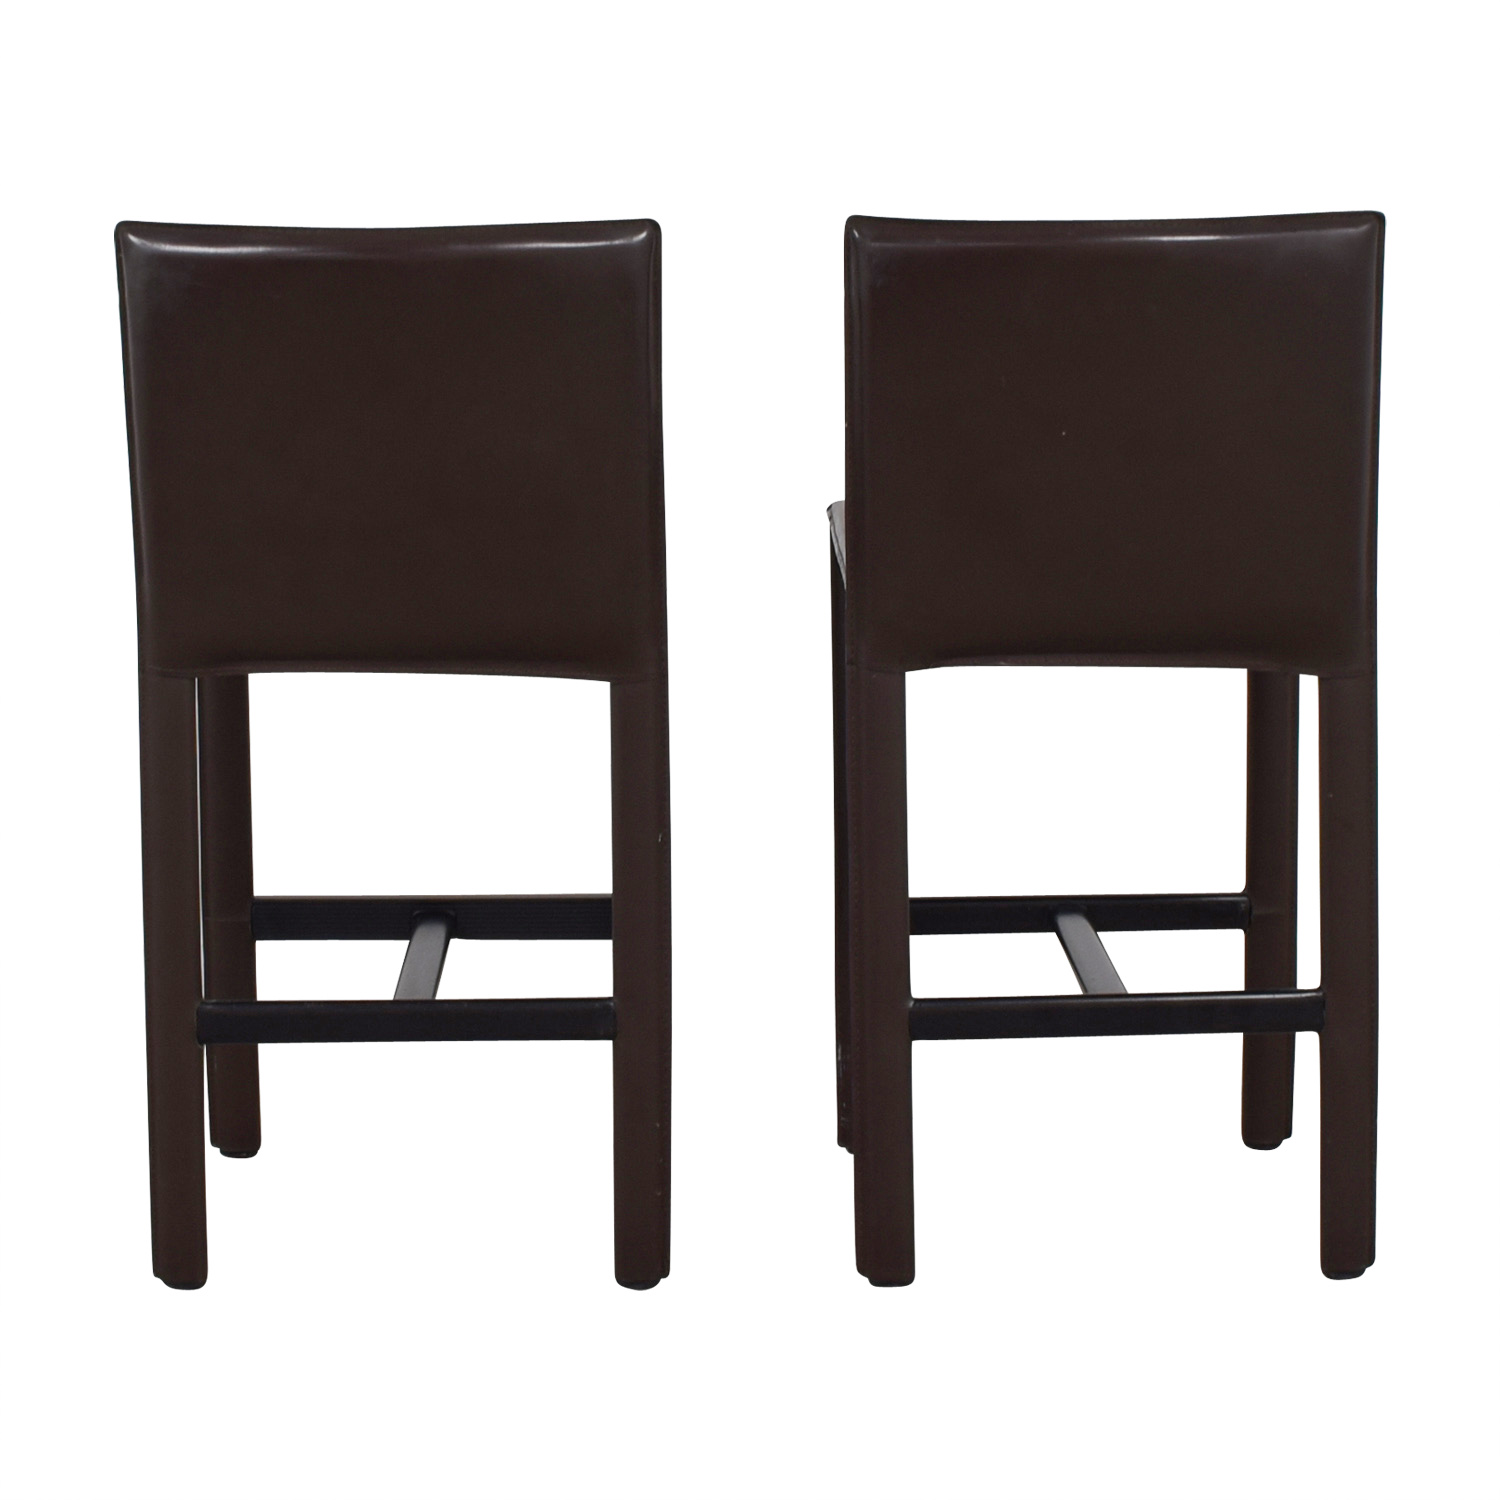 Peachy 73 Off Room Board Room Board Brown Leather Bar Stools Chairs Gmtry Best Dining Table And Chair Ideas Images Gmtryco